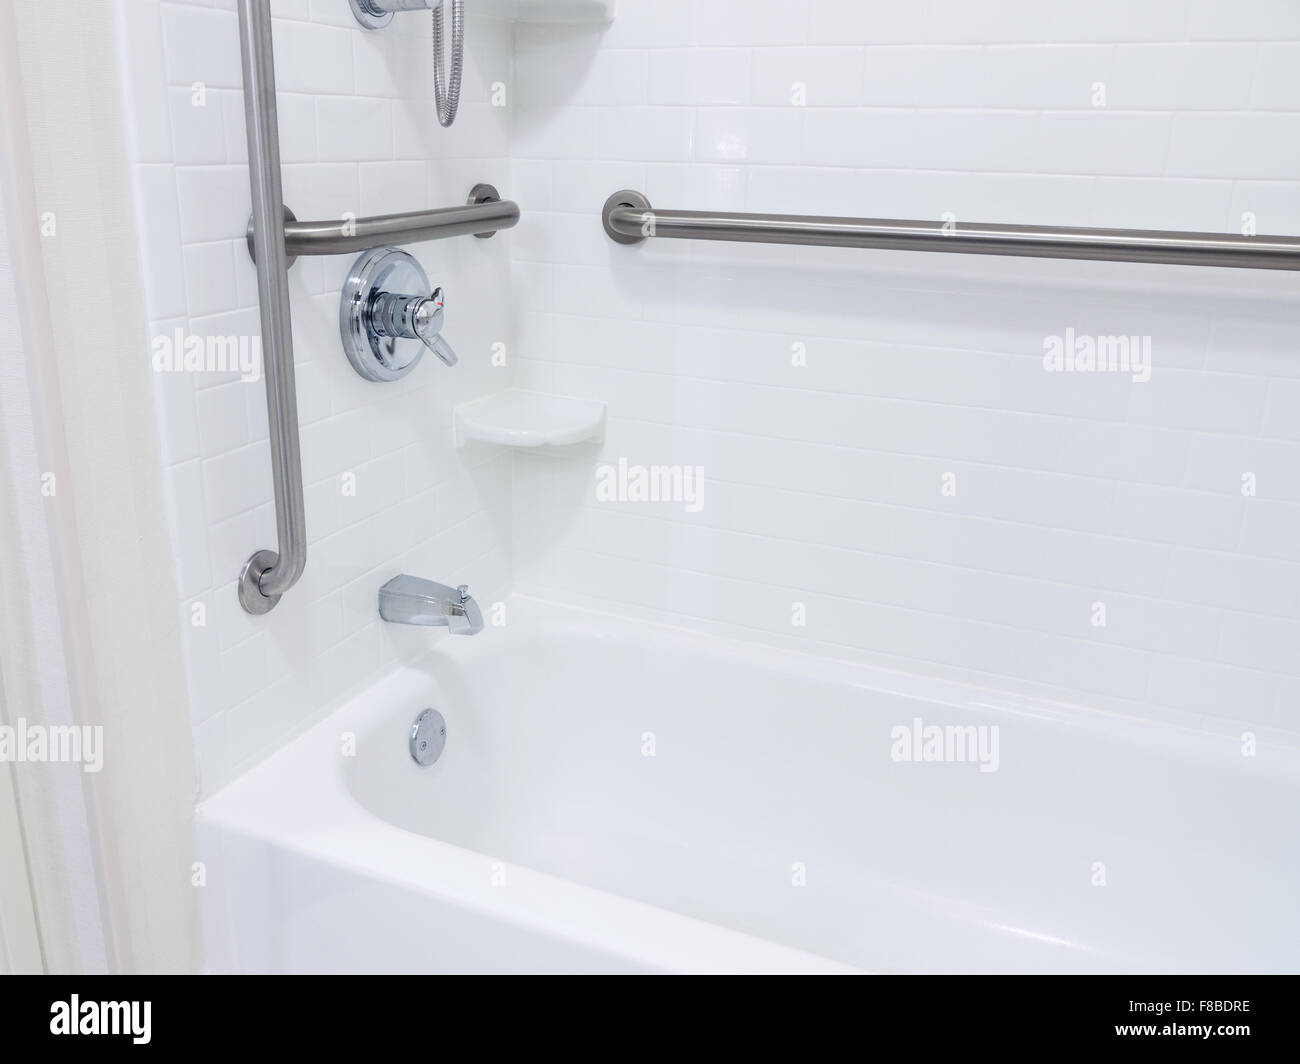 Salle De Bain Accessible Handicape ~ handicap bathroom photos handicap bathroom images alamy